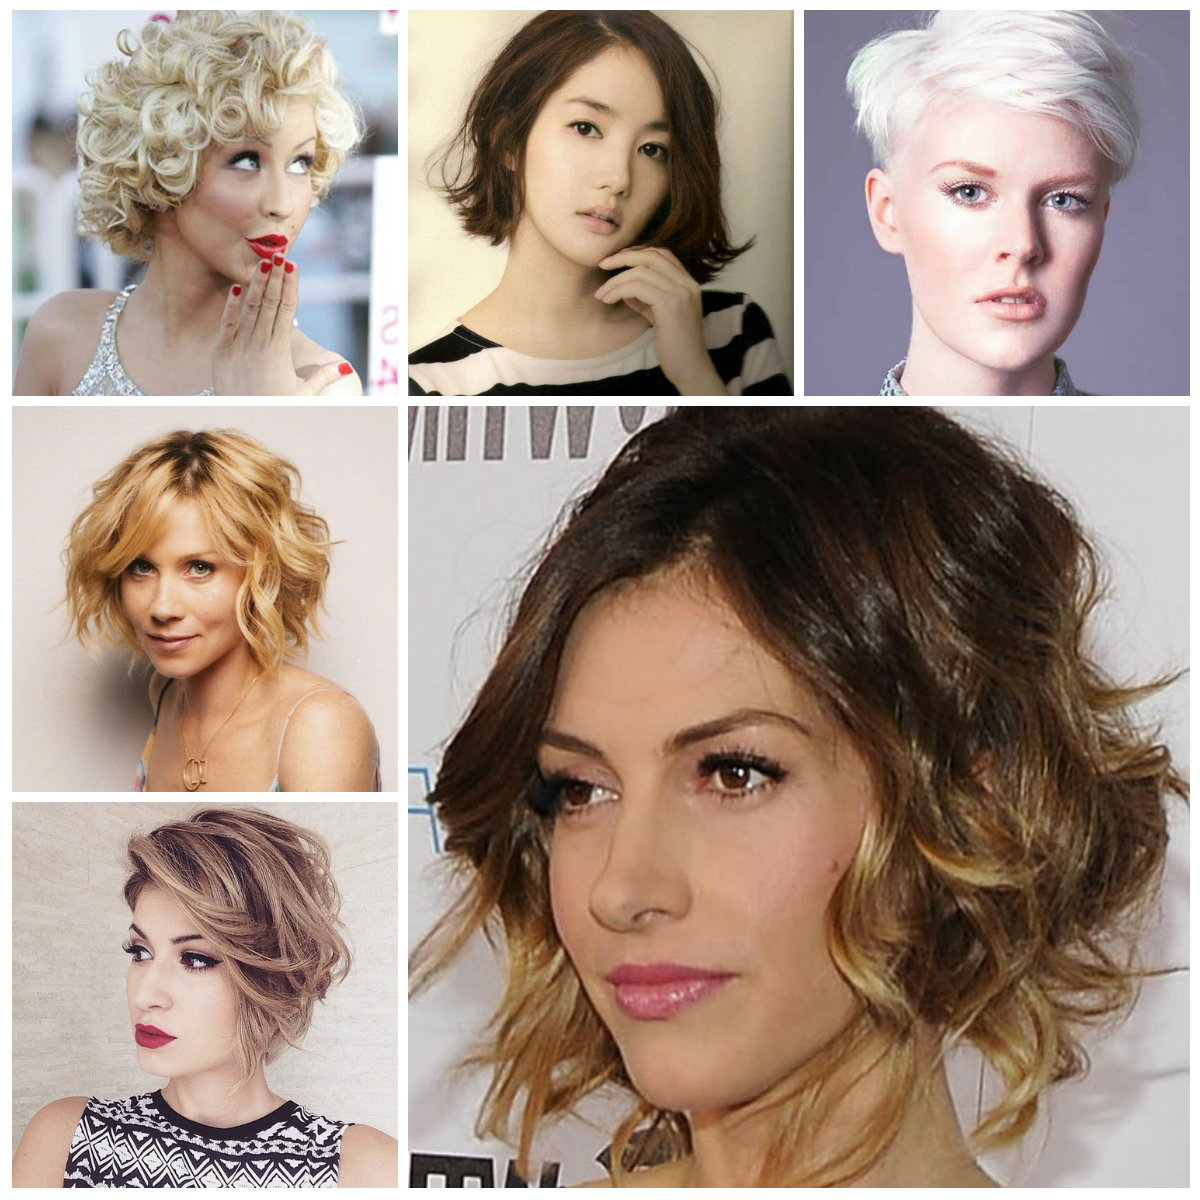 Short Hairstyles   2019 Haircuts, Hairstyles And Hair Colors Inside Chic Short Hair Cuts (View 22 of 25)